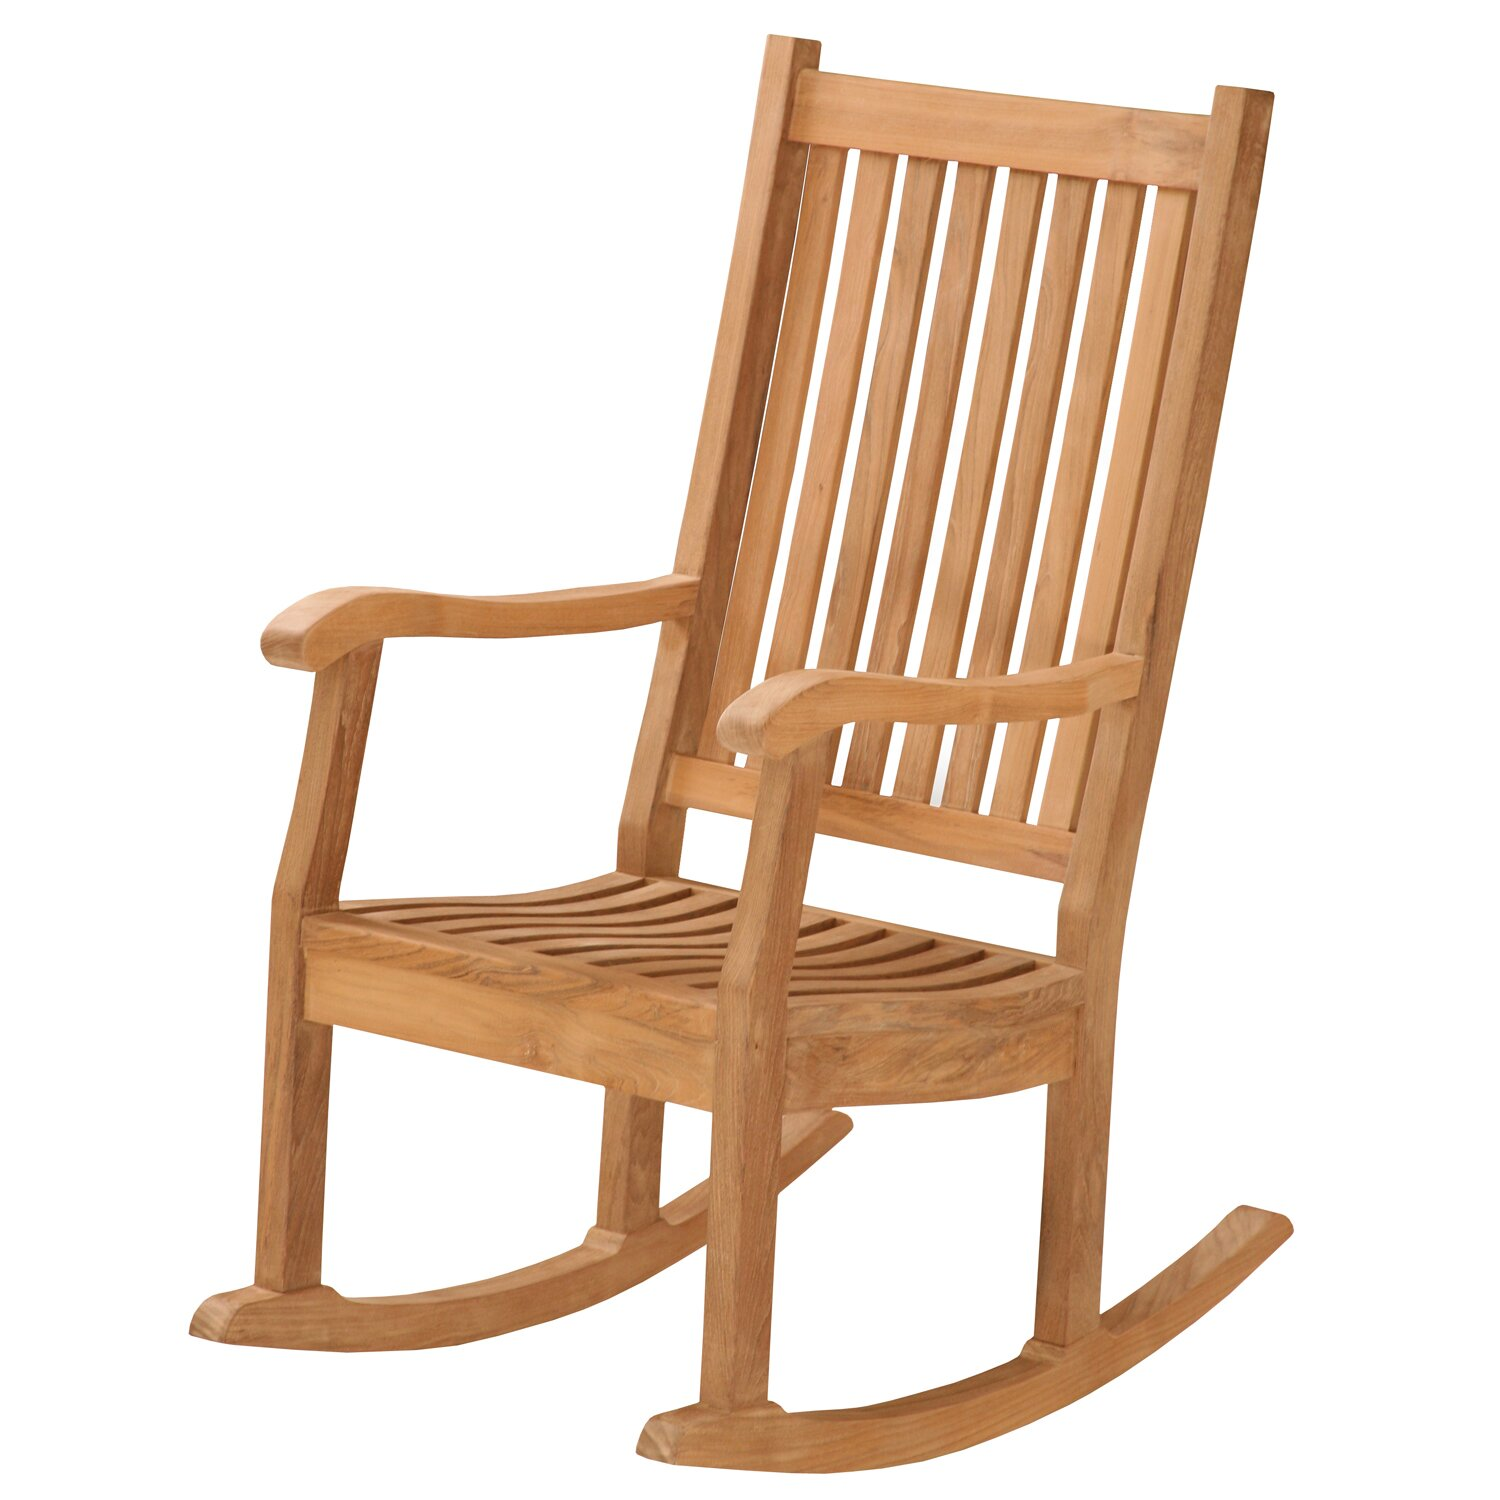 Darby home co lucy teak rocking chair wayfair for Rocking chair